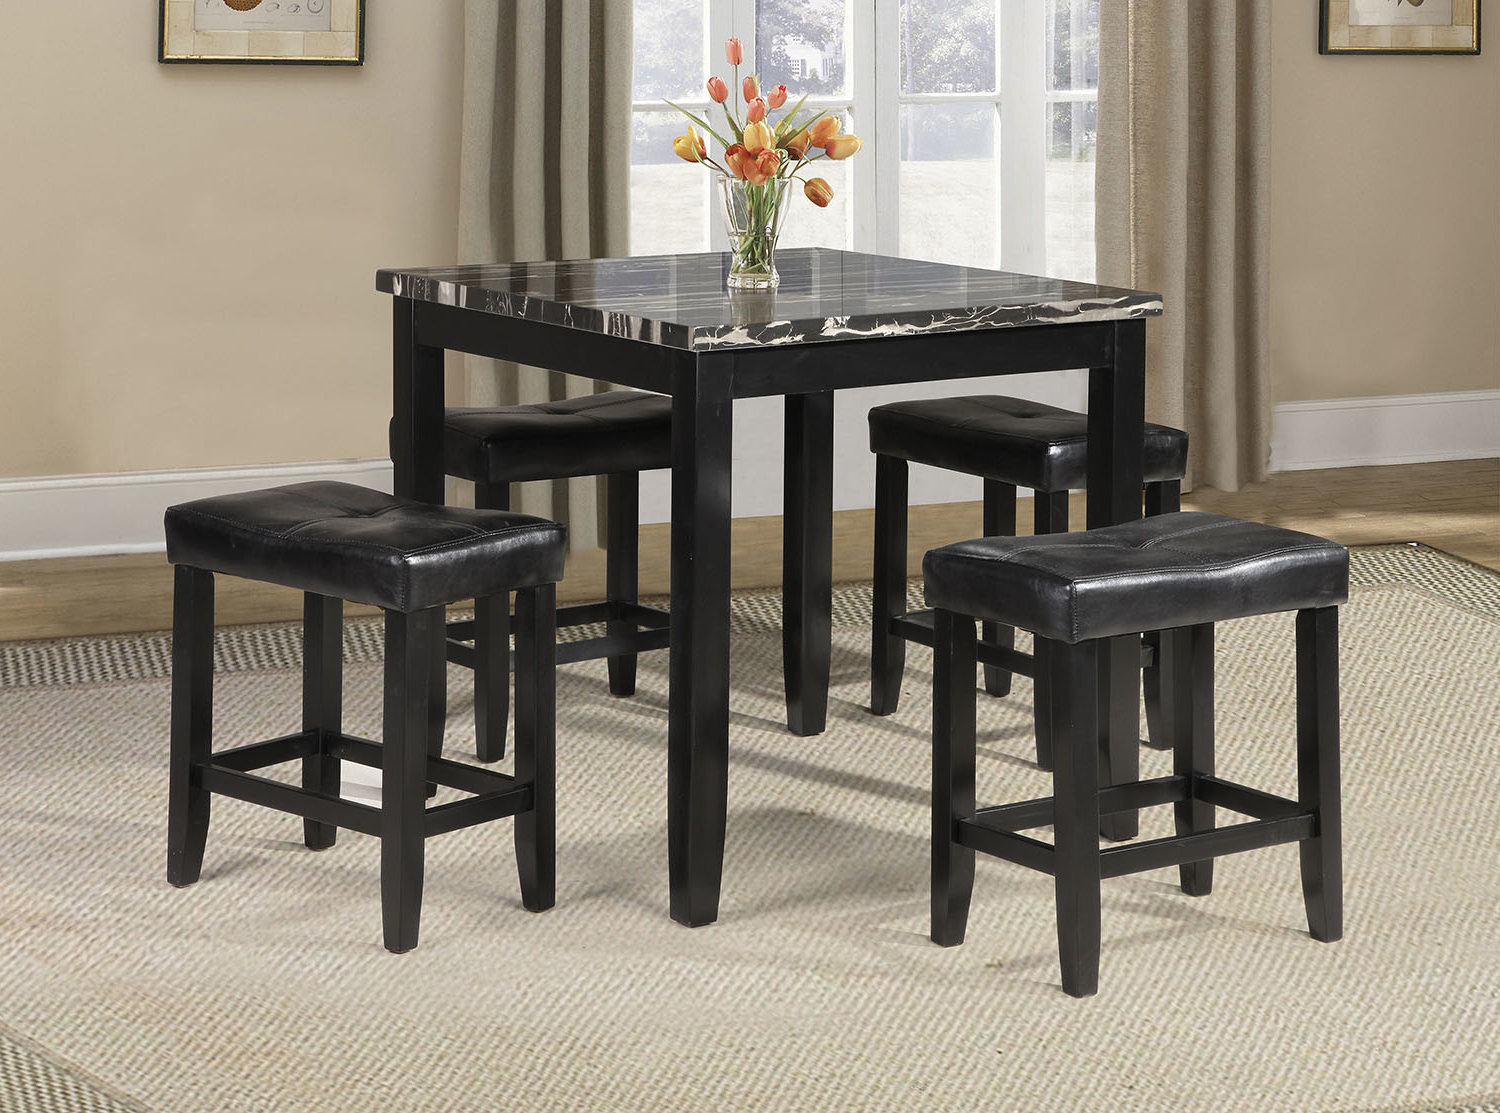 Mizpah 3 Piece Counter Height Dining Sets With Well Known Winston Porter Rayle 5 Piece Counter Height Dining Set (View 10 of 25)